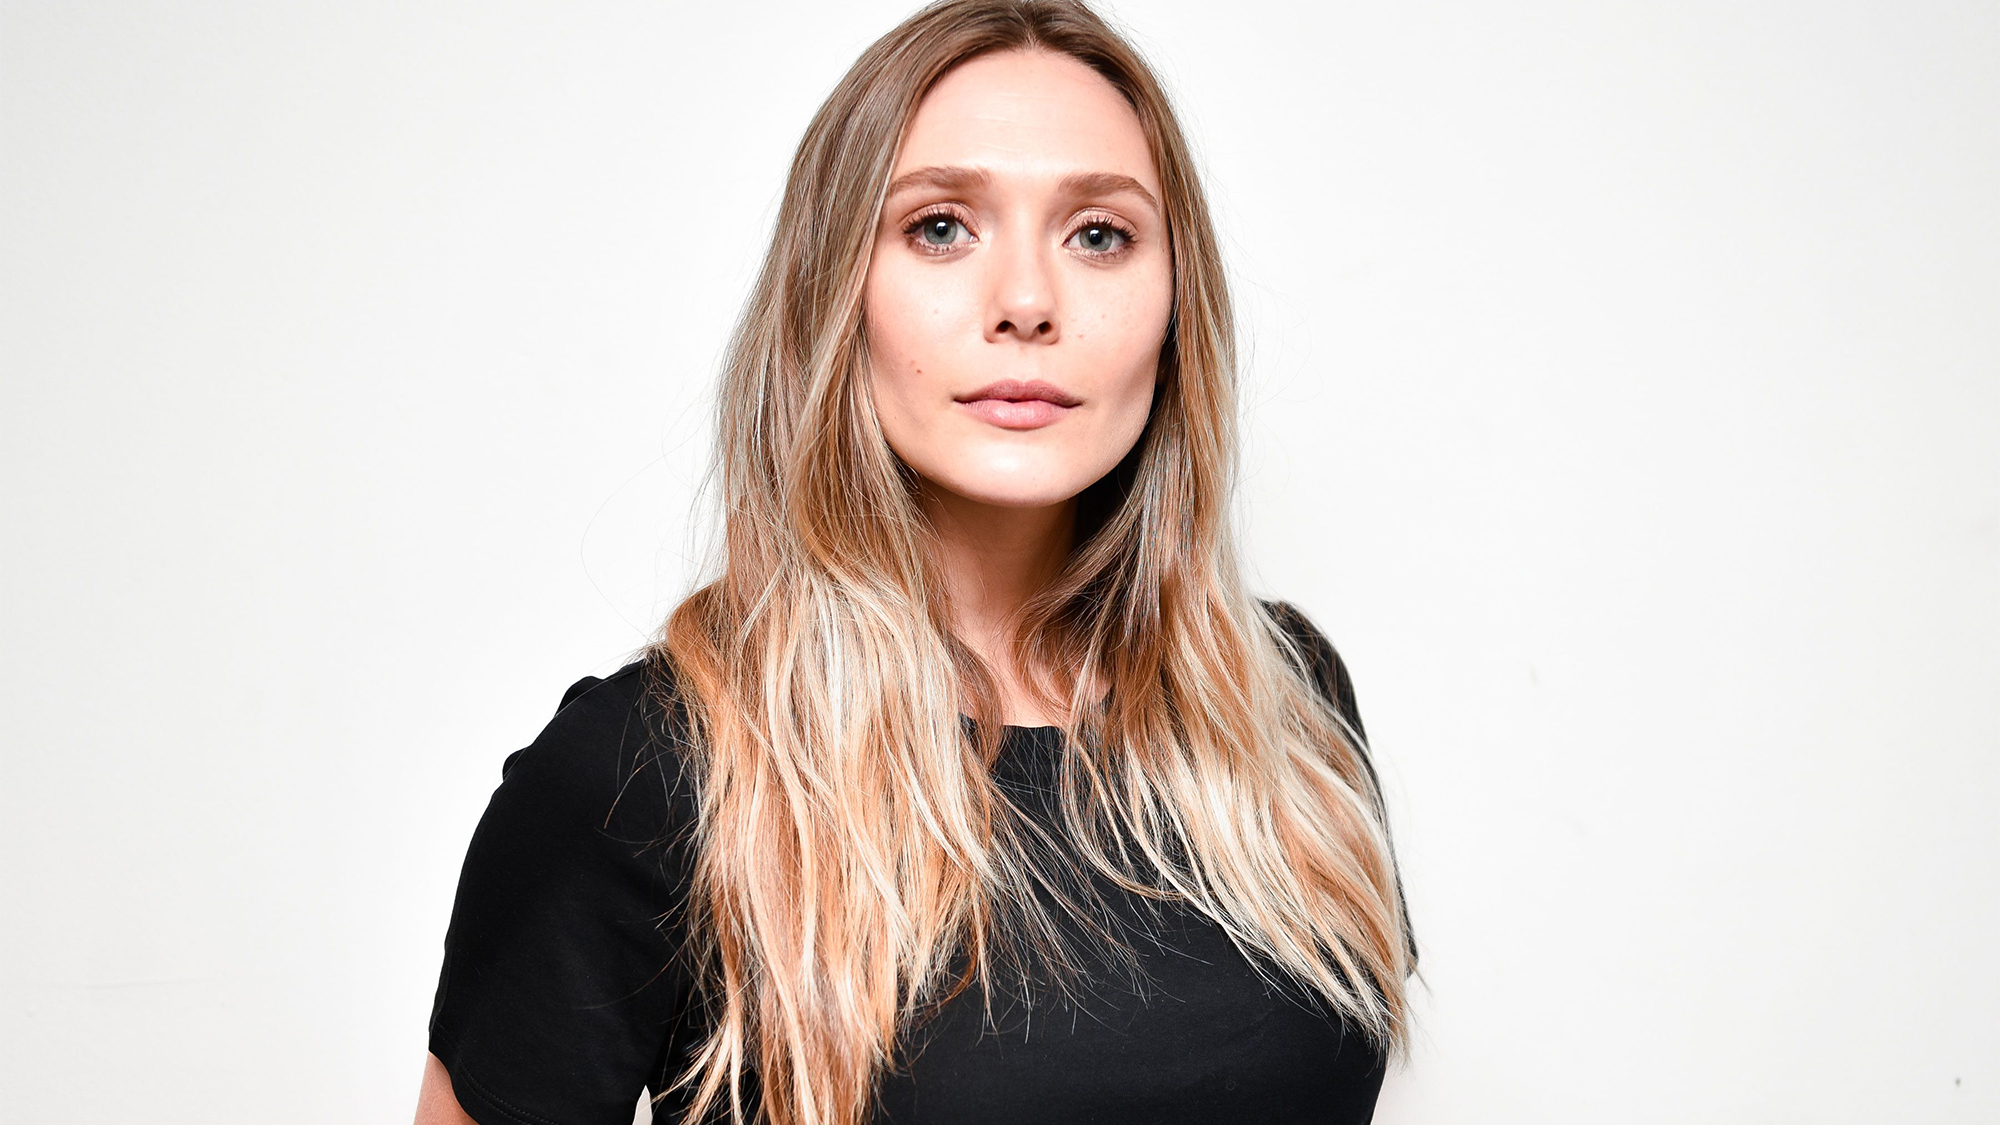 Elizabeth Olsen admits the pressure of premieres makes her cry and we totally get it